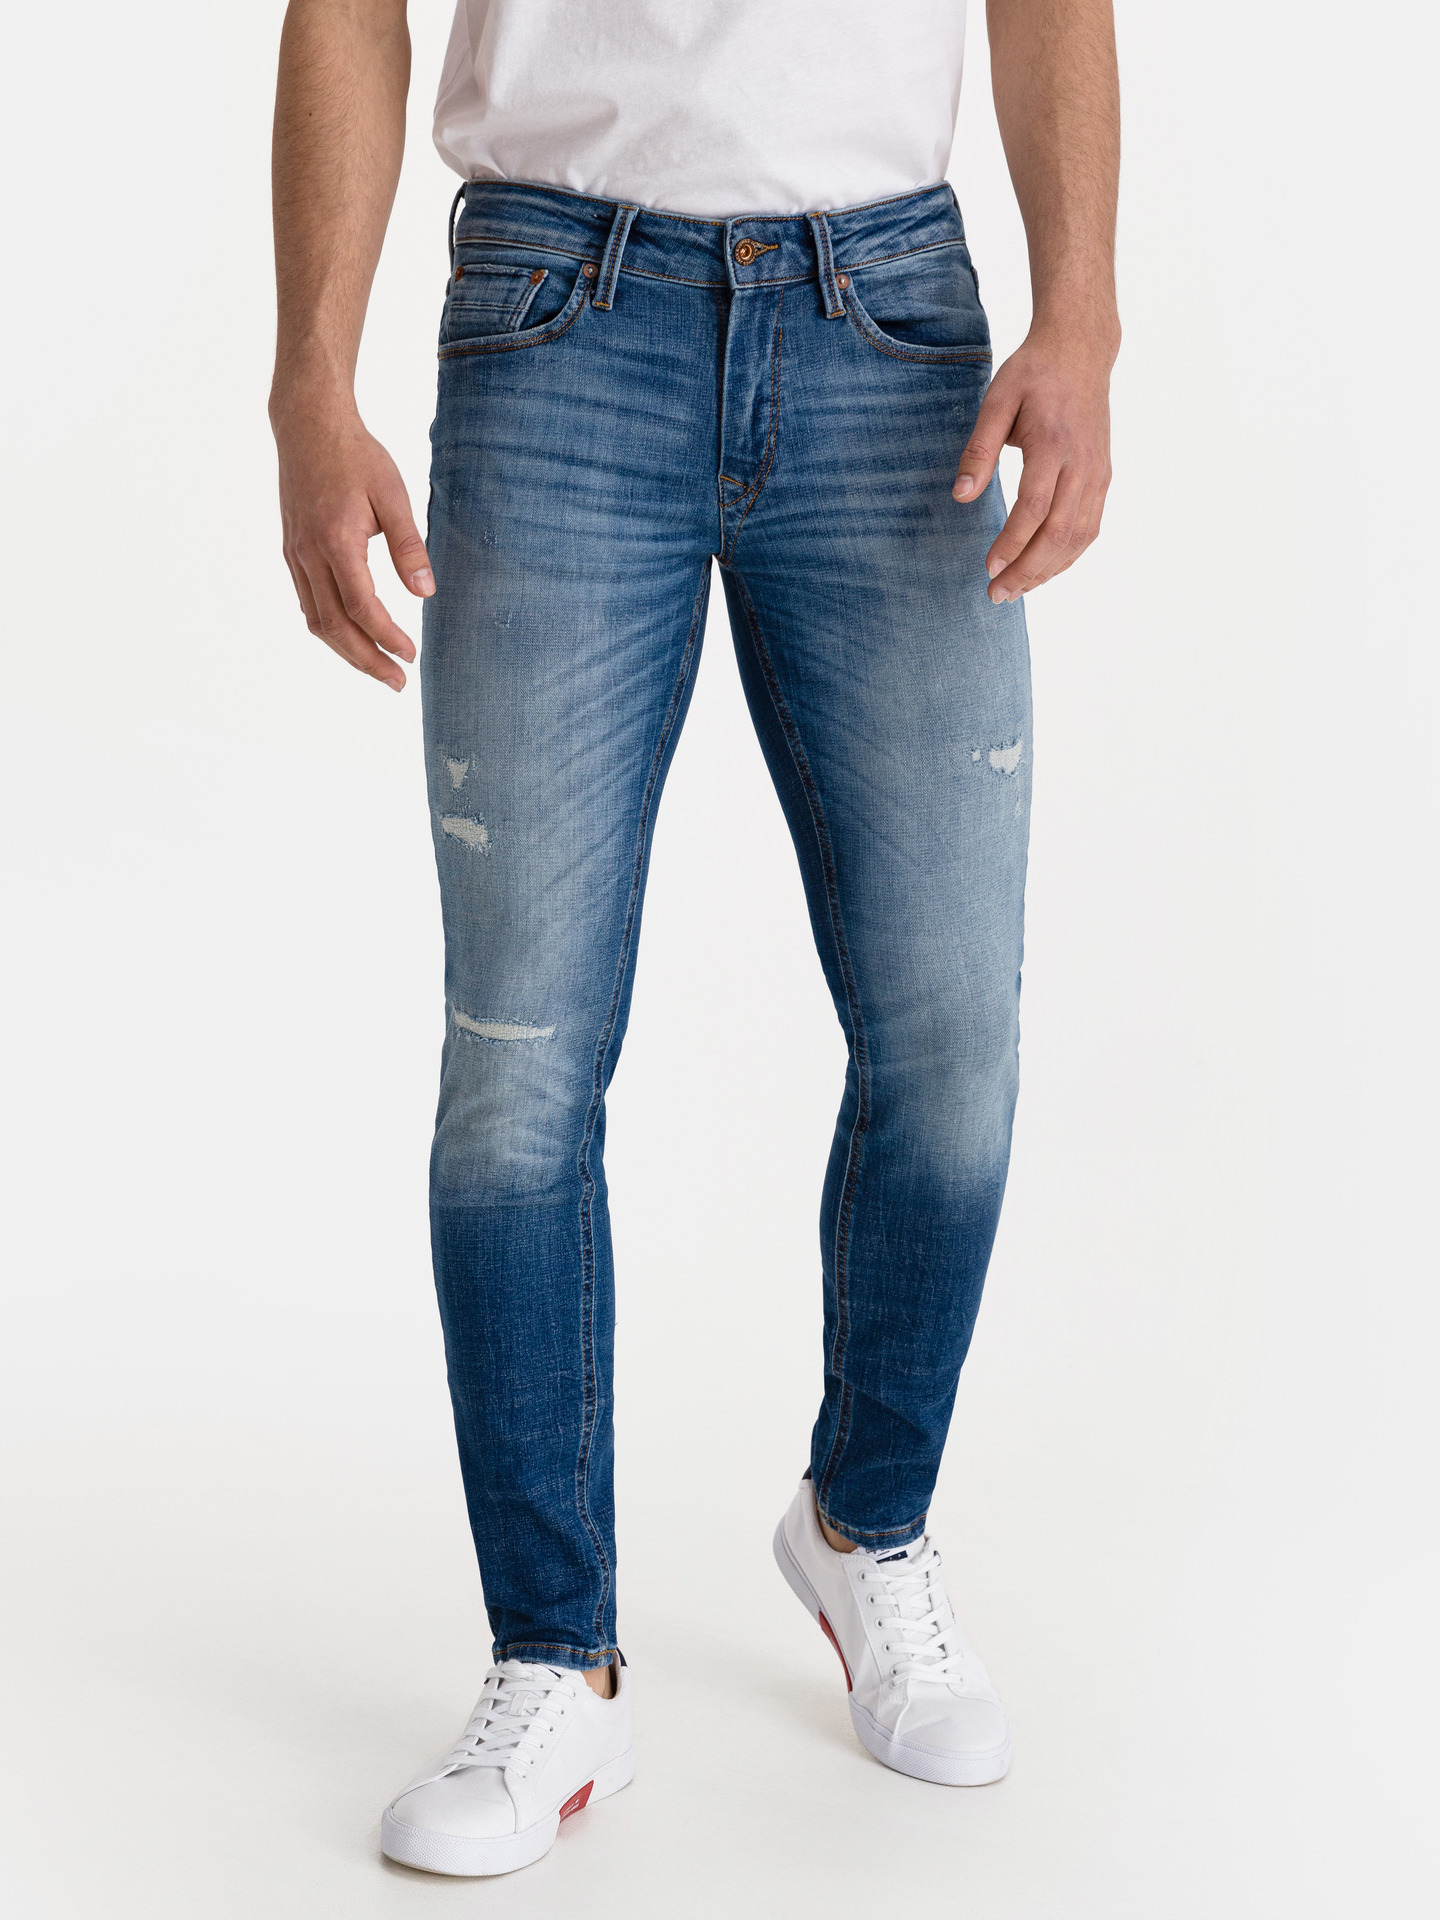 Liam Seal Jos Jeans Jack   Jones Modrá